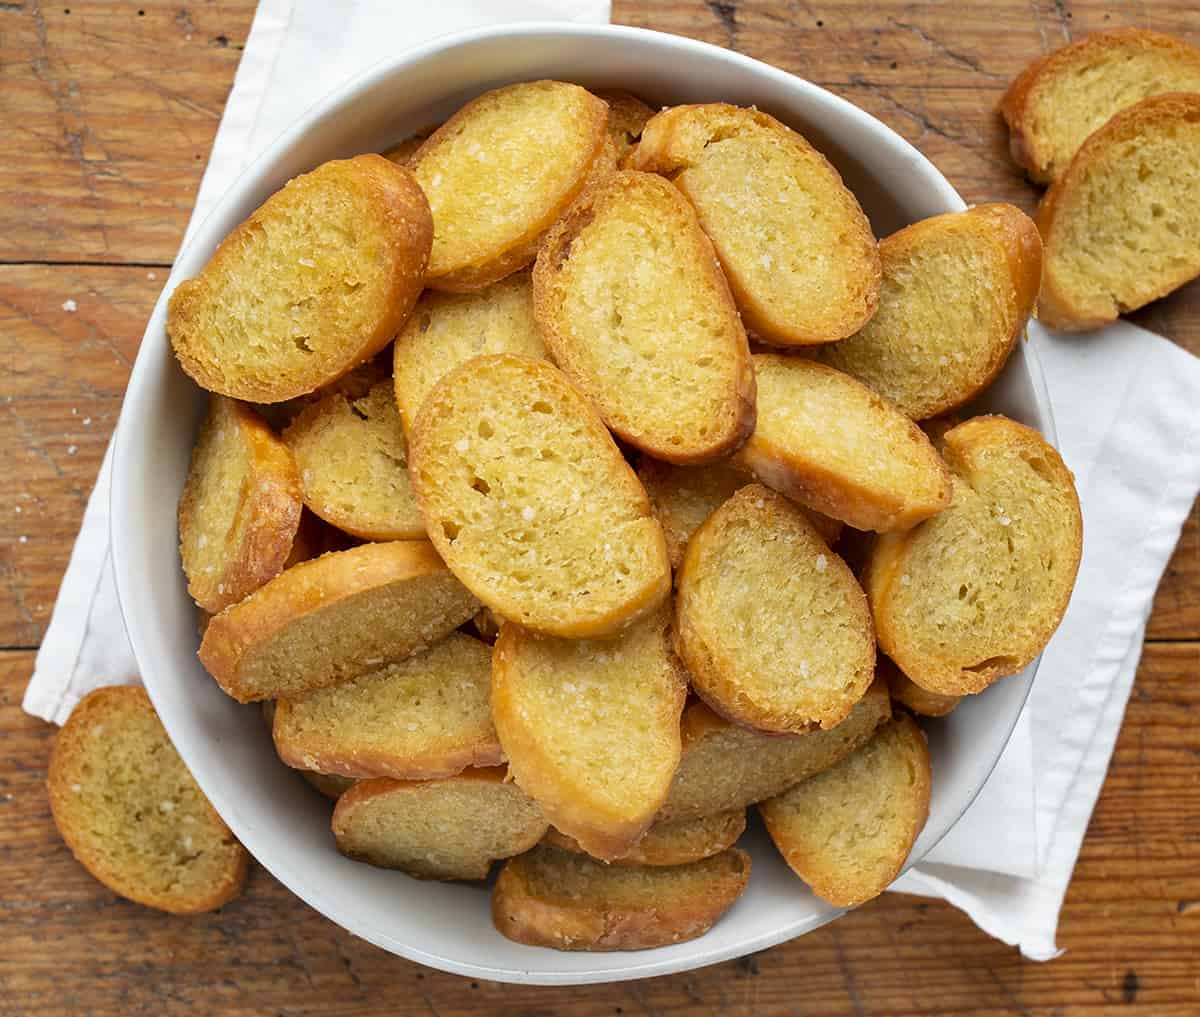 Bowl of Toasted Baguette - Crostini from OVerhead